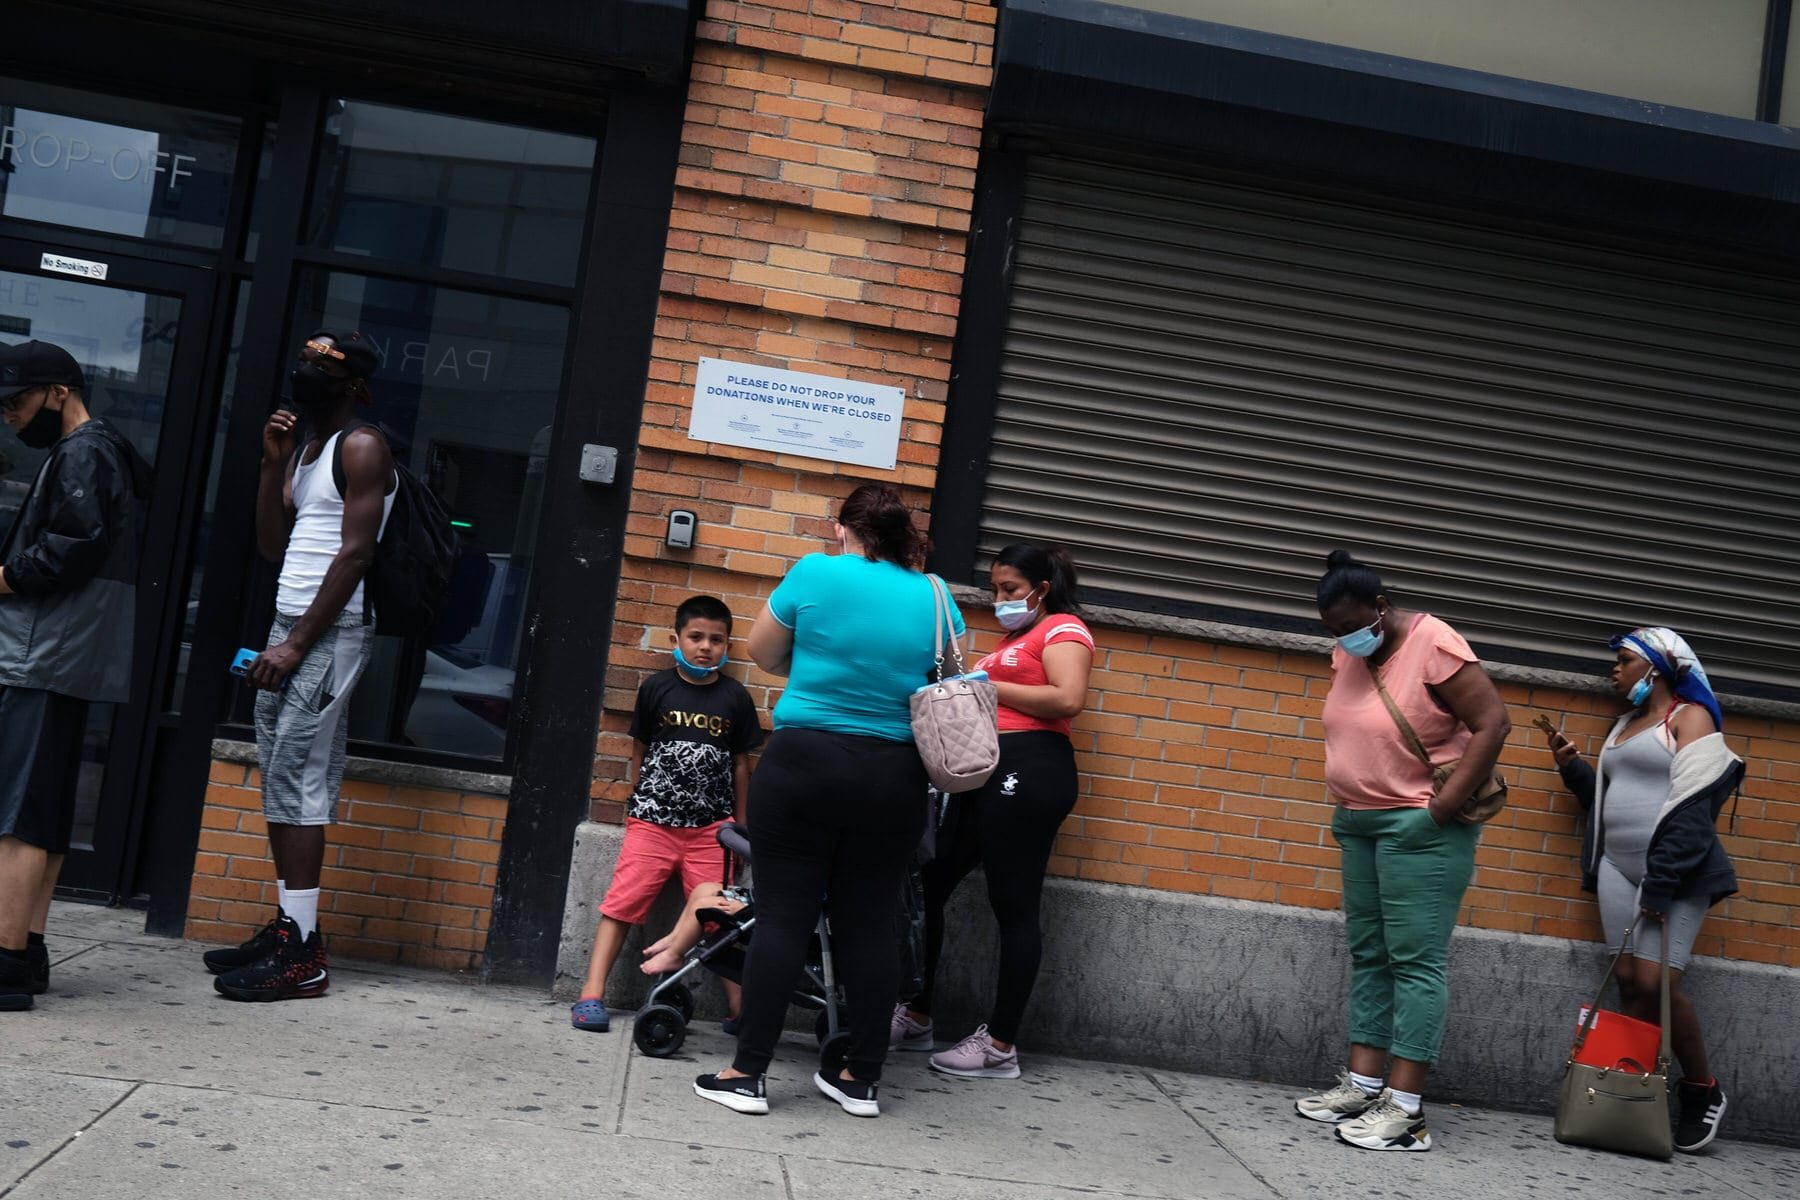 People wait in line for food assistance cards on July 07, 2020 in the Brooklyn borough of New York City.